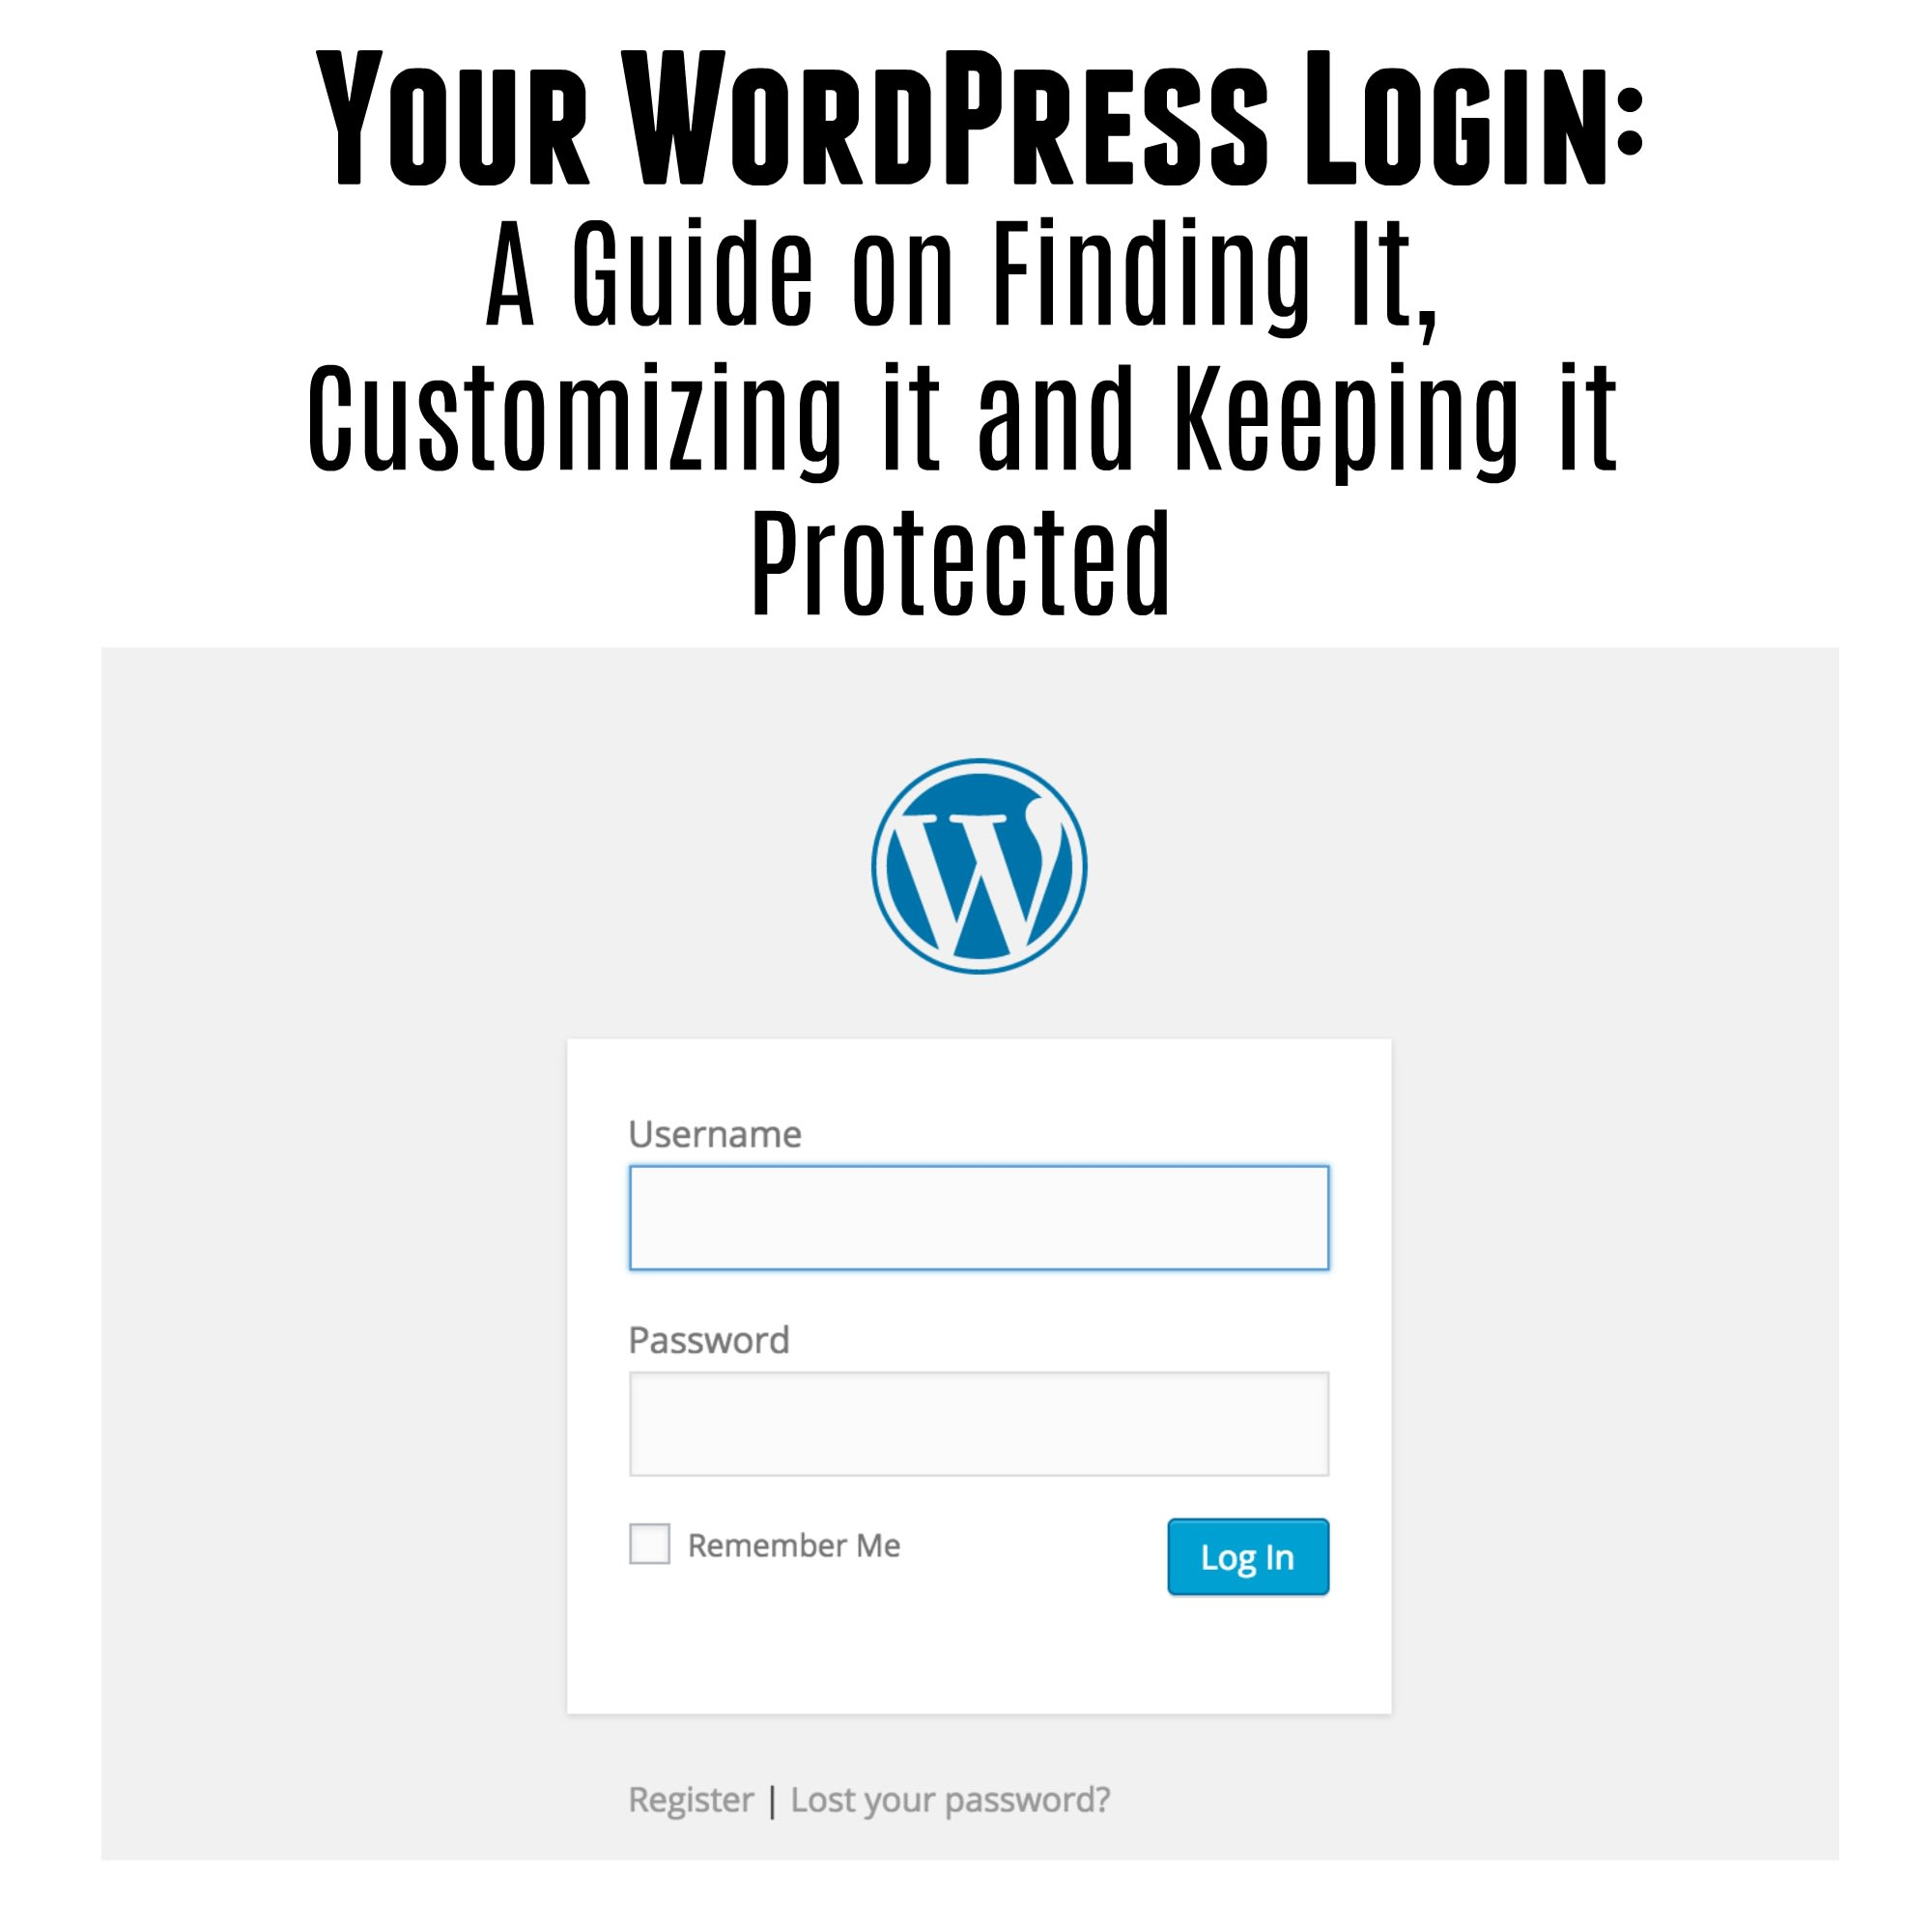 Your WordPress Login - A Guide on Finding It, Customizing it and Keeping it Protected